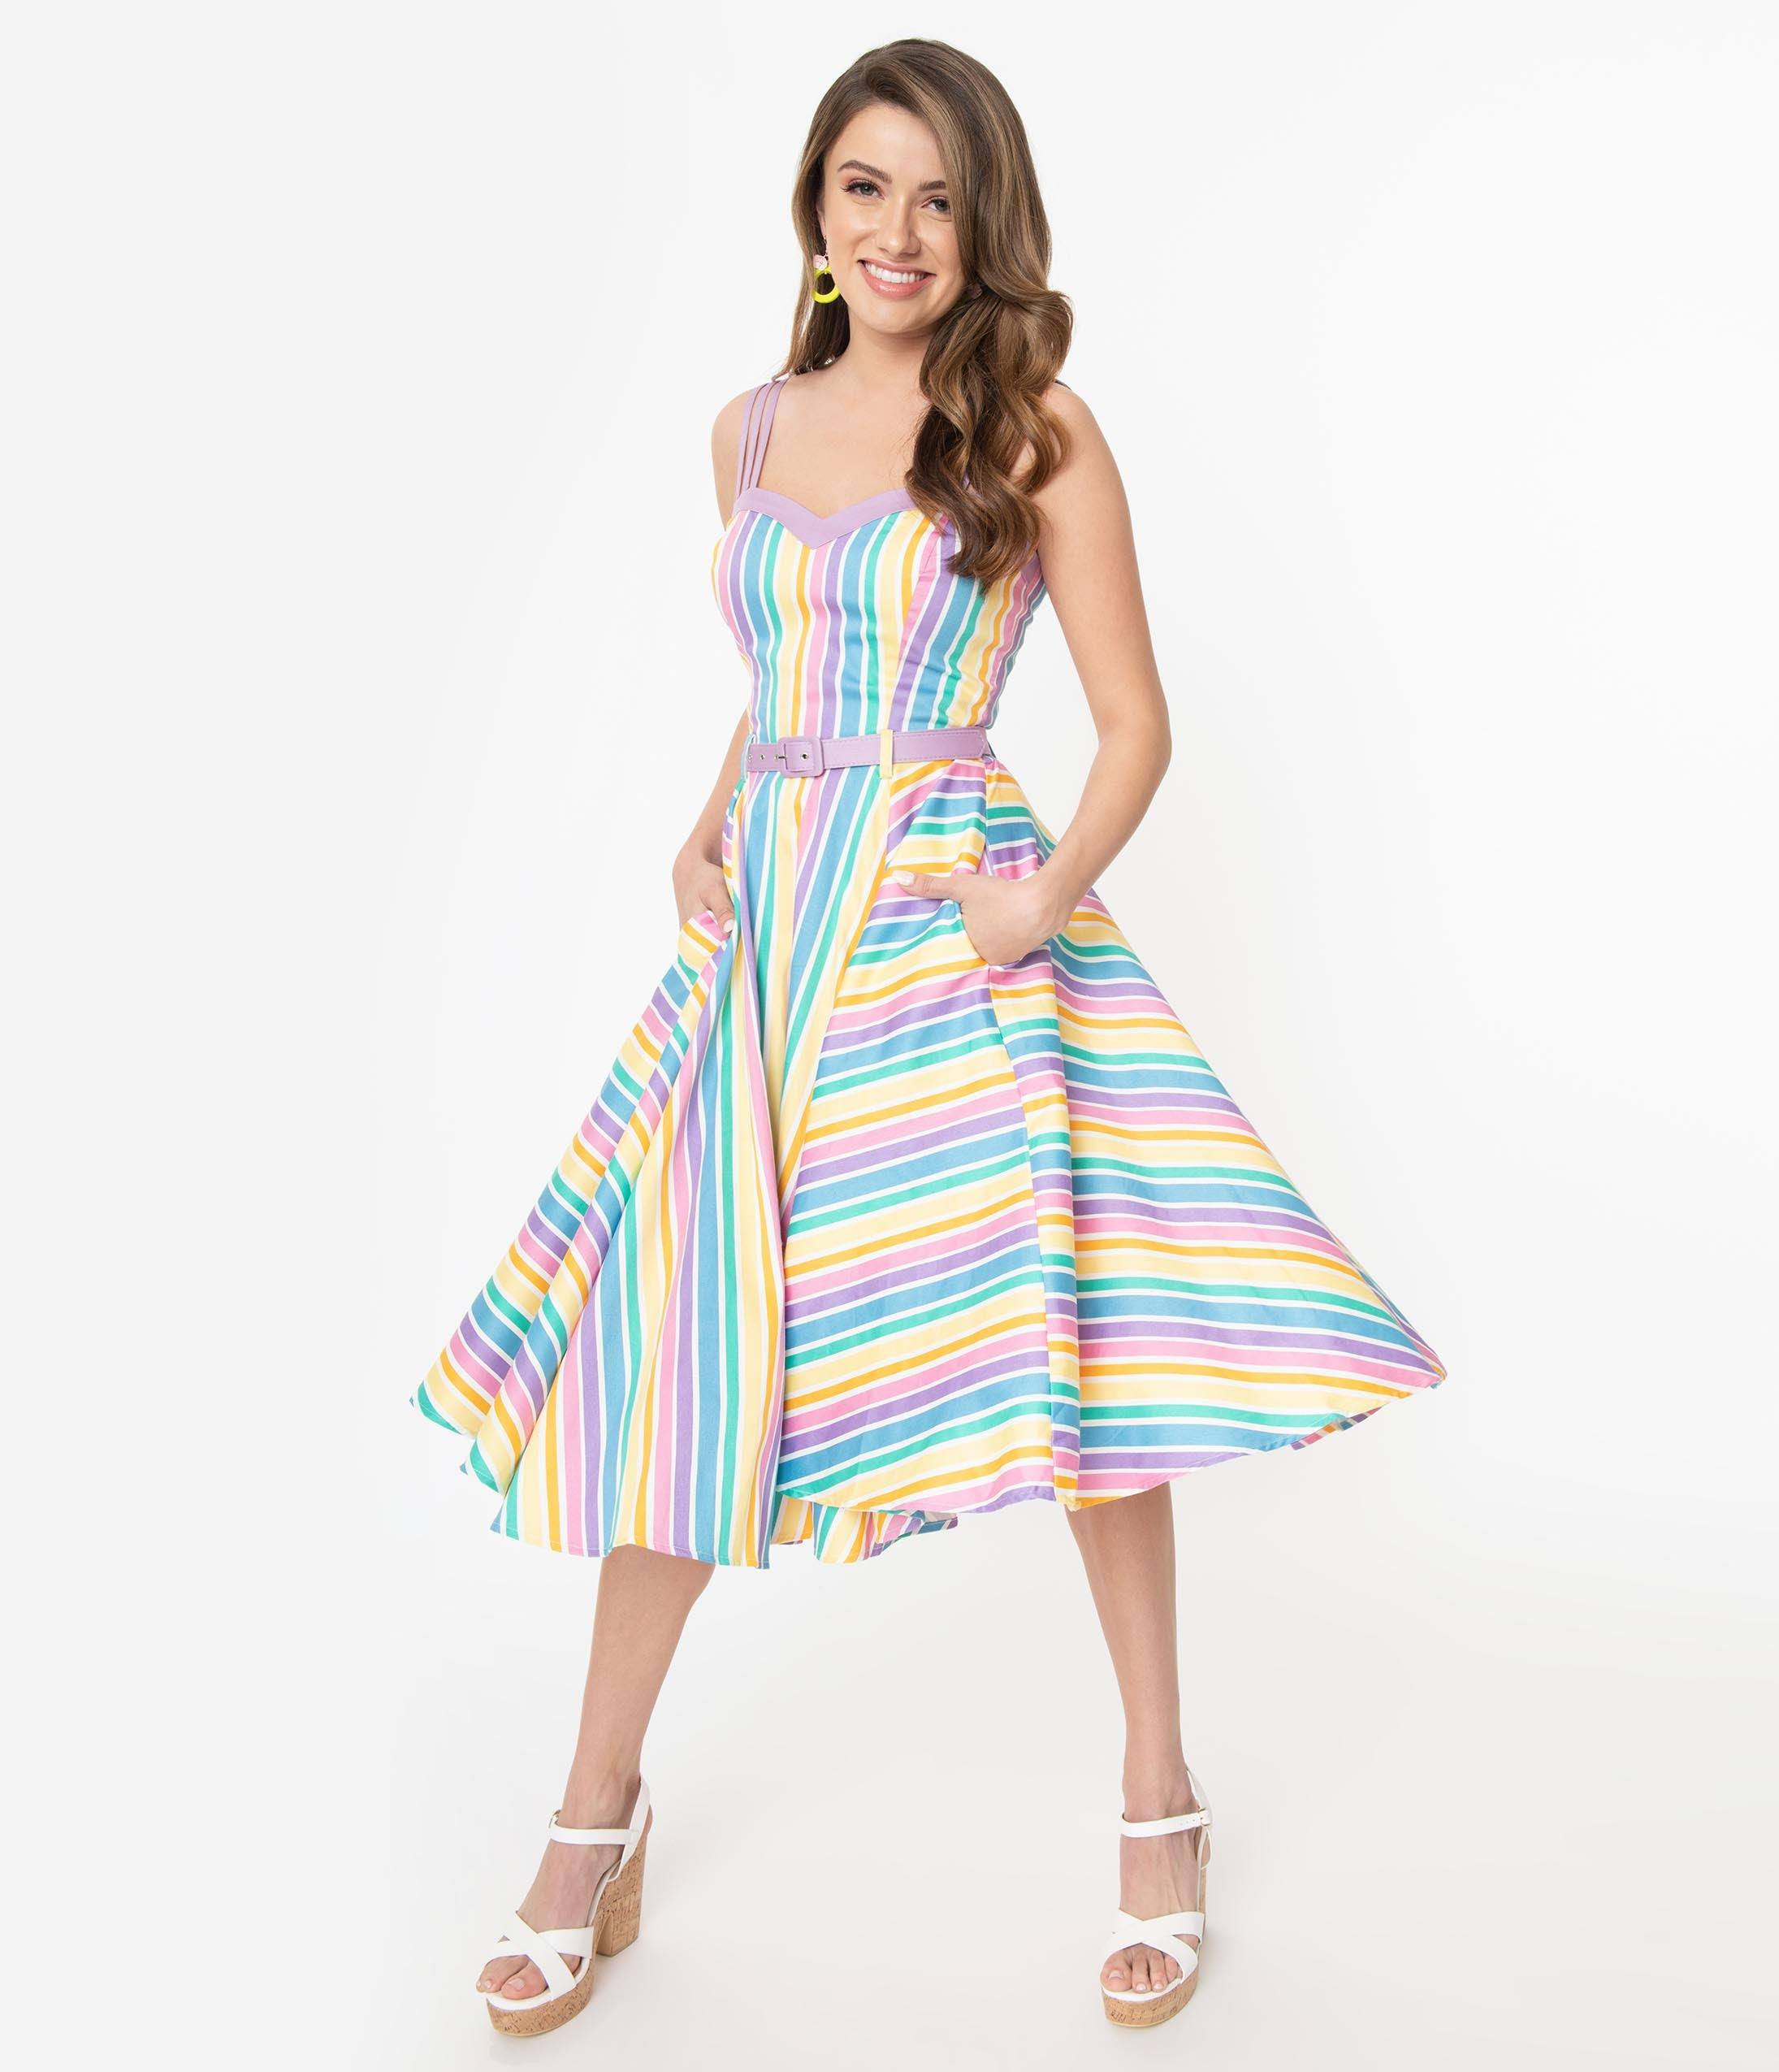 1950s Swing Dresses | 50s Swing Dress Collectif Retro Pastel Rainbow Stripe Cotton Nova Swing Dress $88.00 AT vintagedancer.com